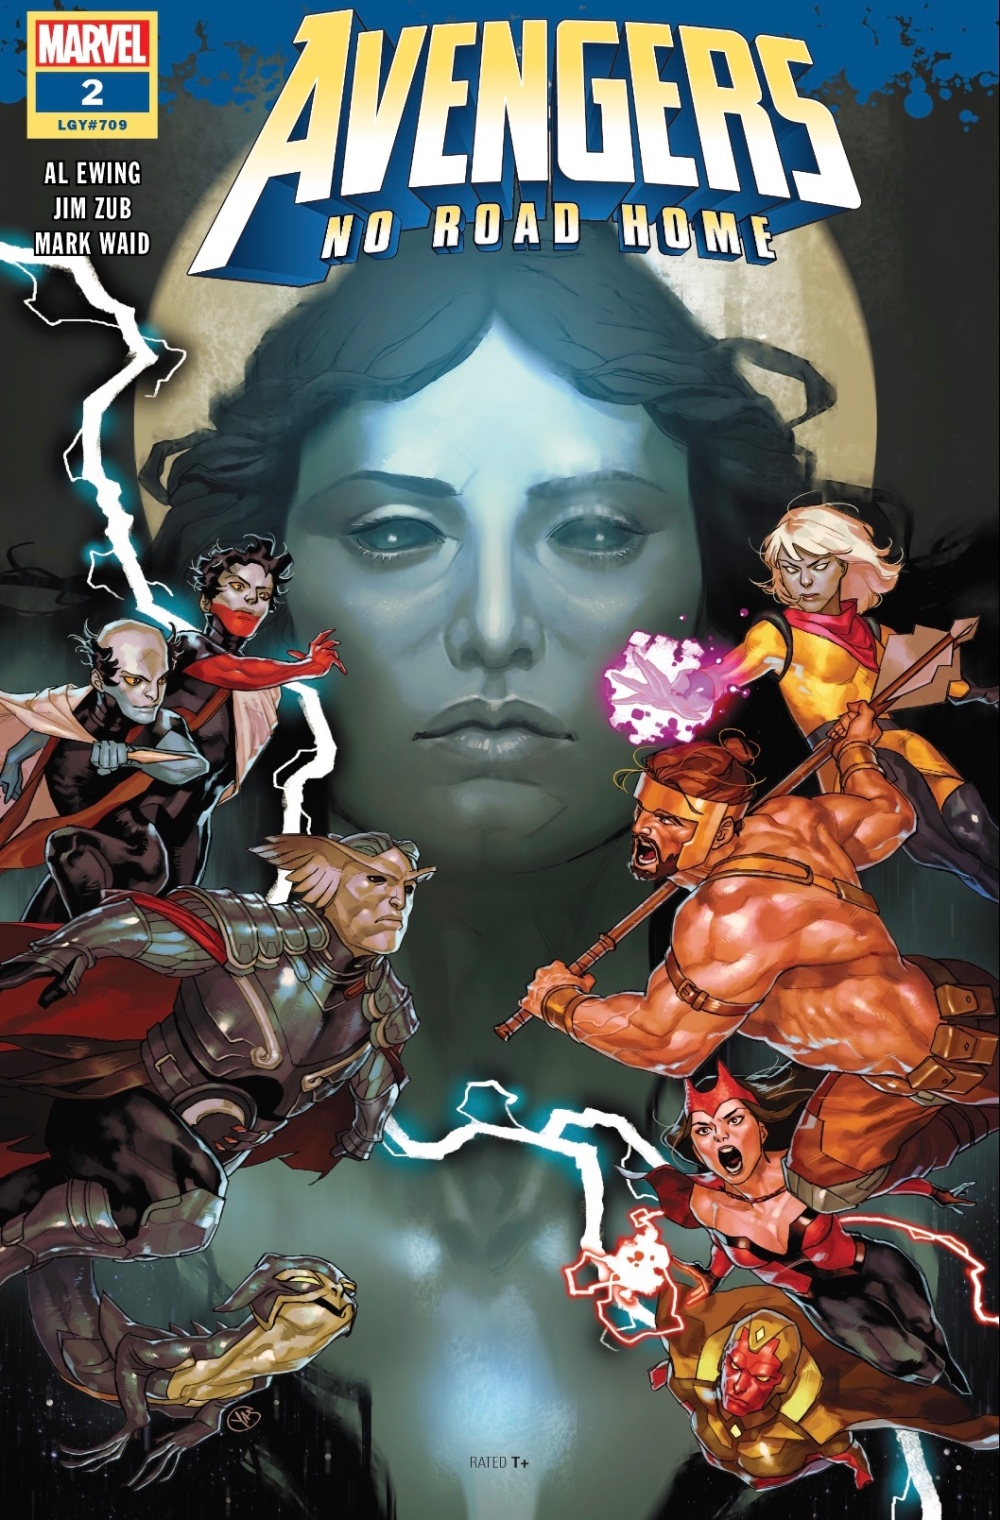 Avengers: No Road Home #2 review